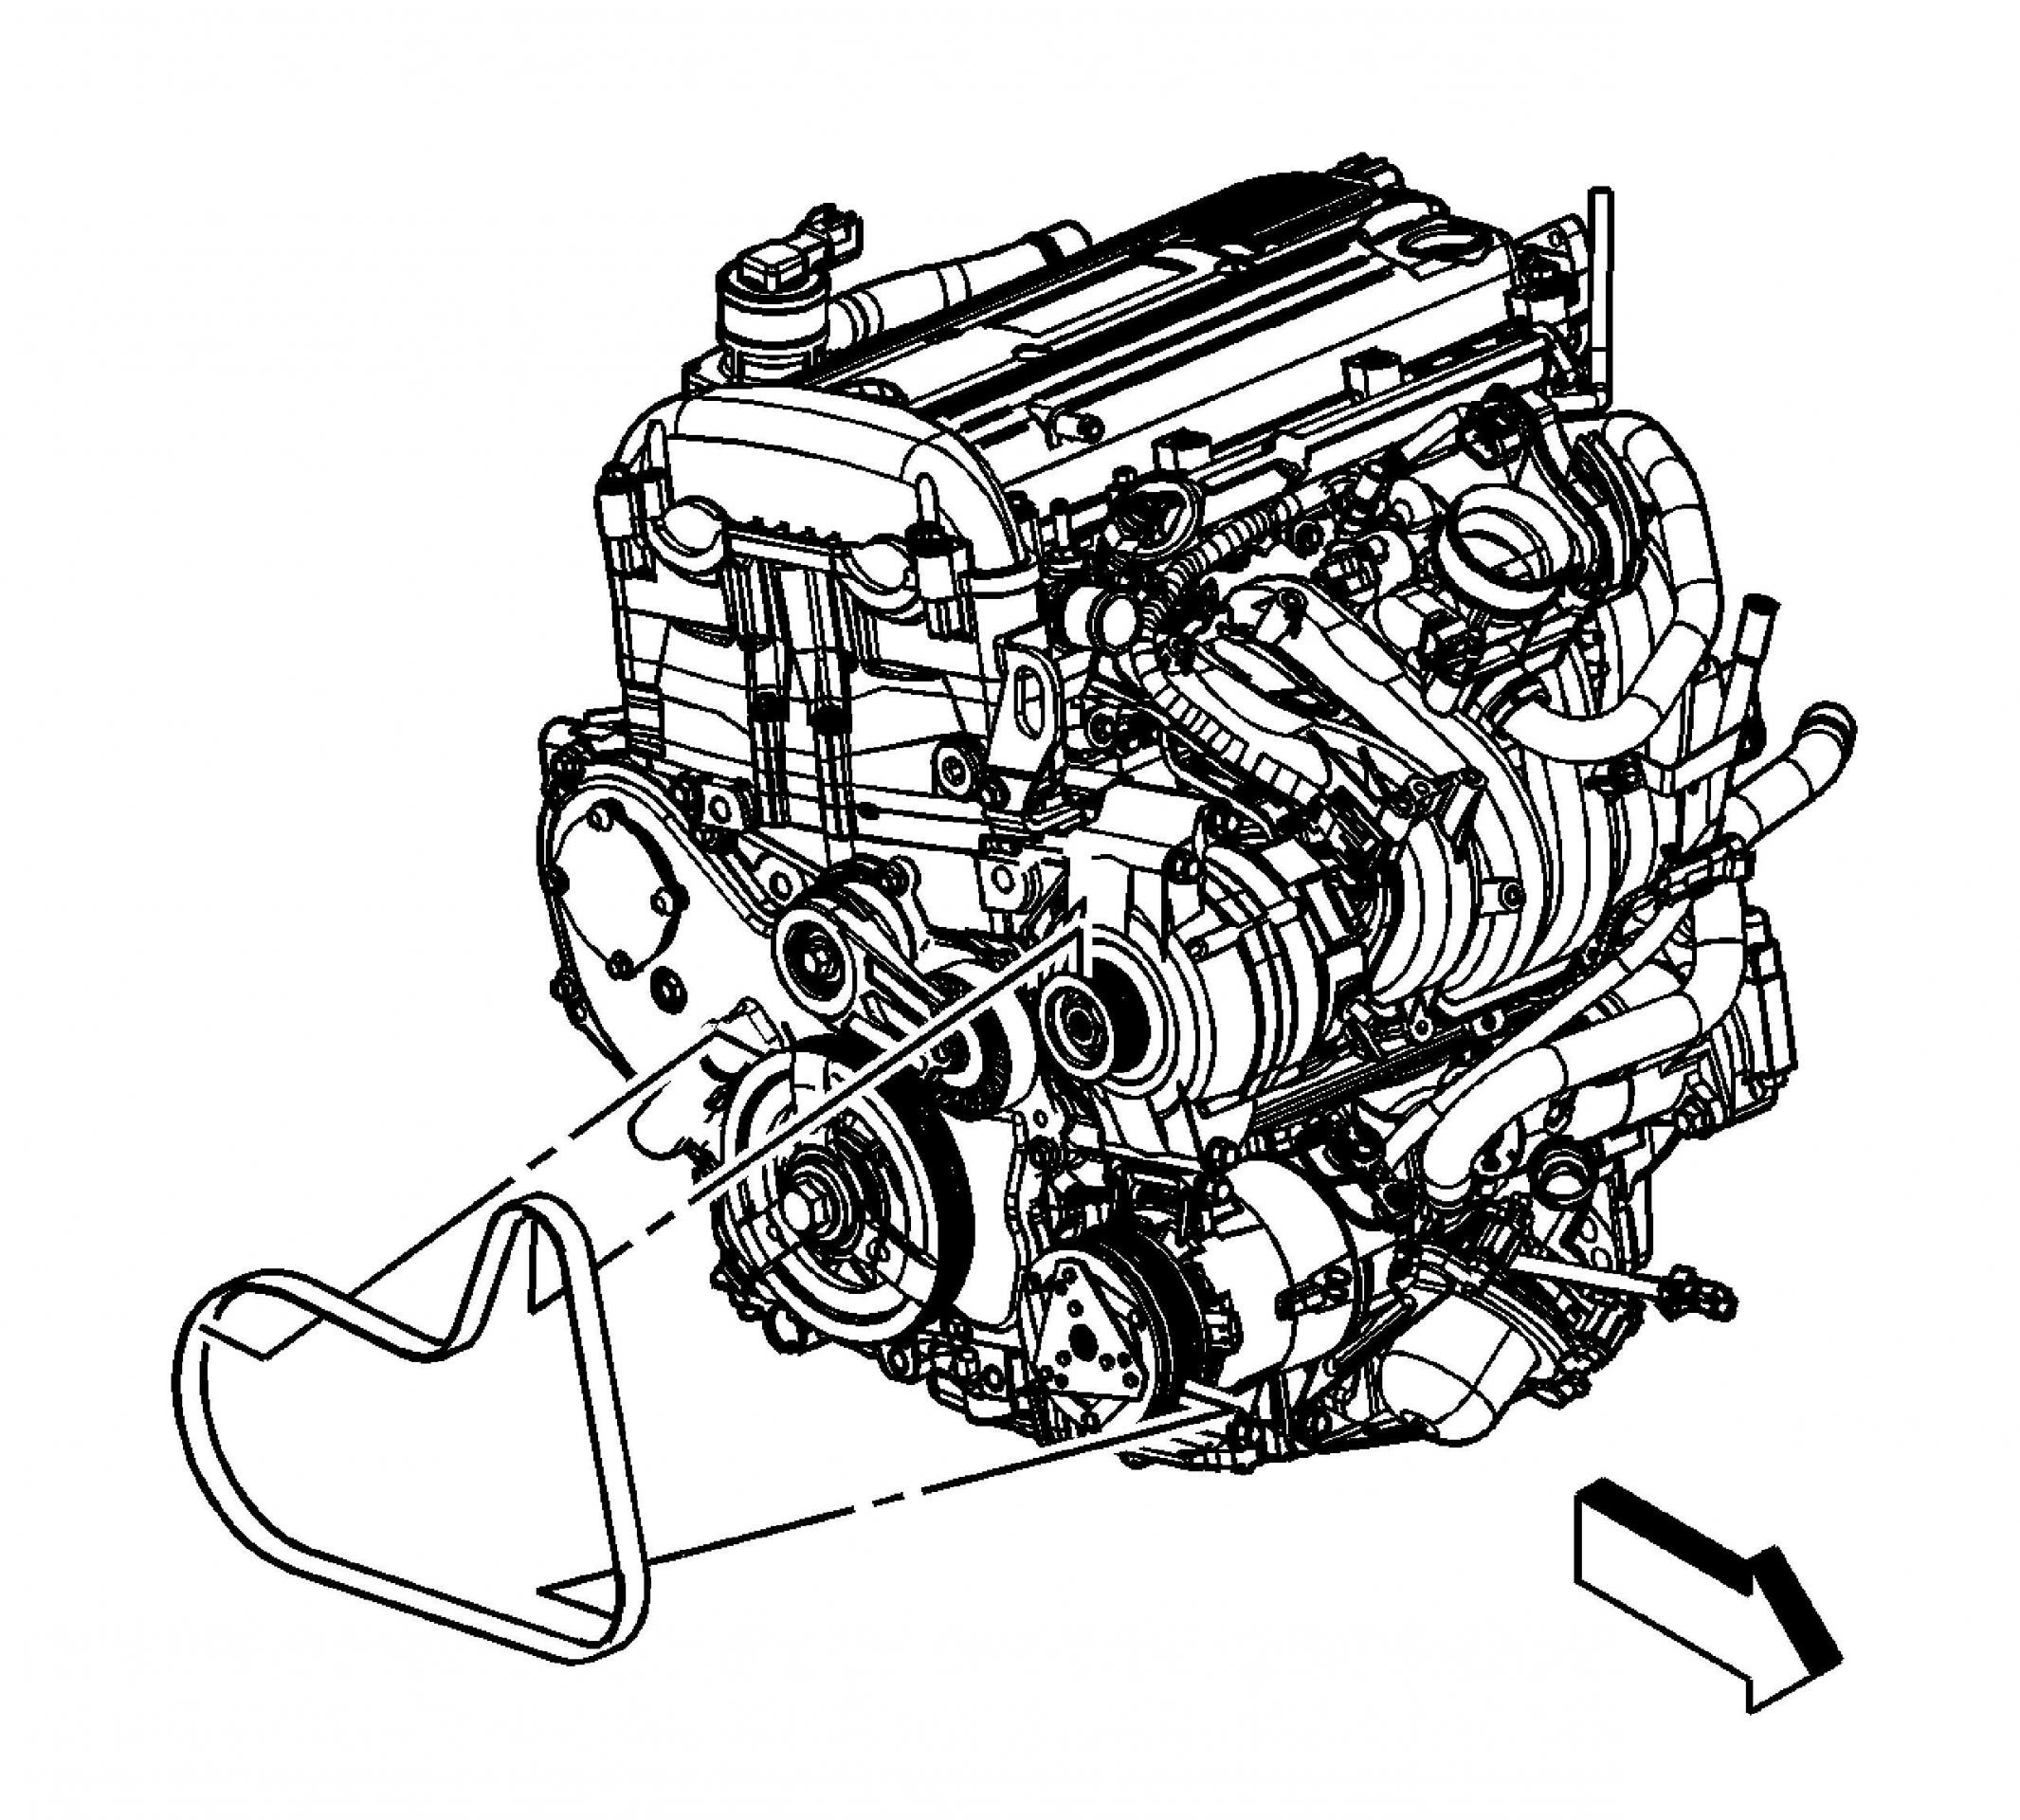 Chevy Cobalt Engine Diagram Cool Review About 2006 Cobalt Ss Specs with Gorgeous Gallery Of Chevy Cobalt Engine Diagram